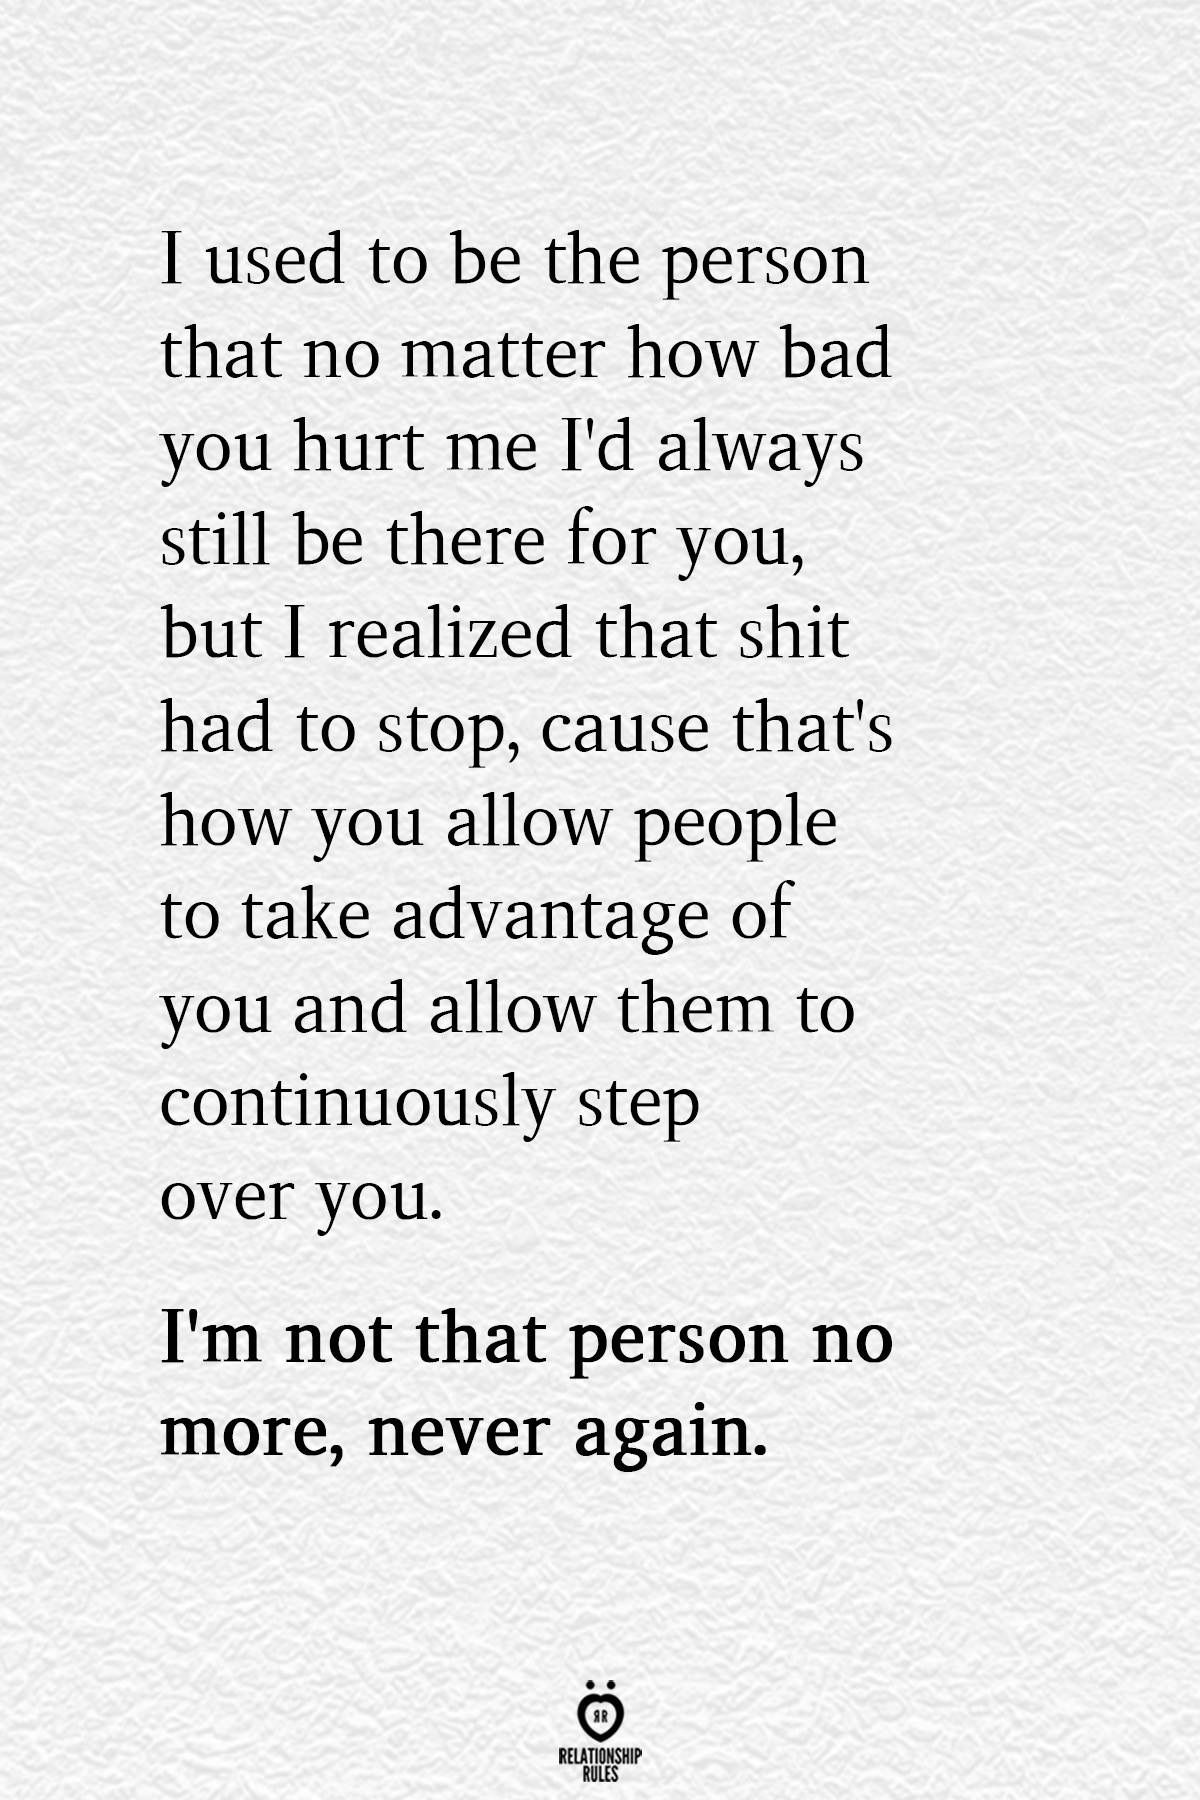 Pin By Erin On This Is Me Words Hurt Quotes Being Used Quotes Feeling Used Quotes